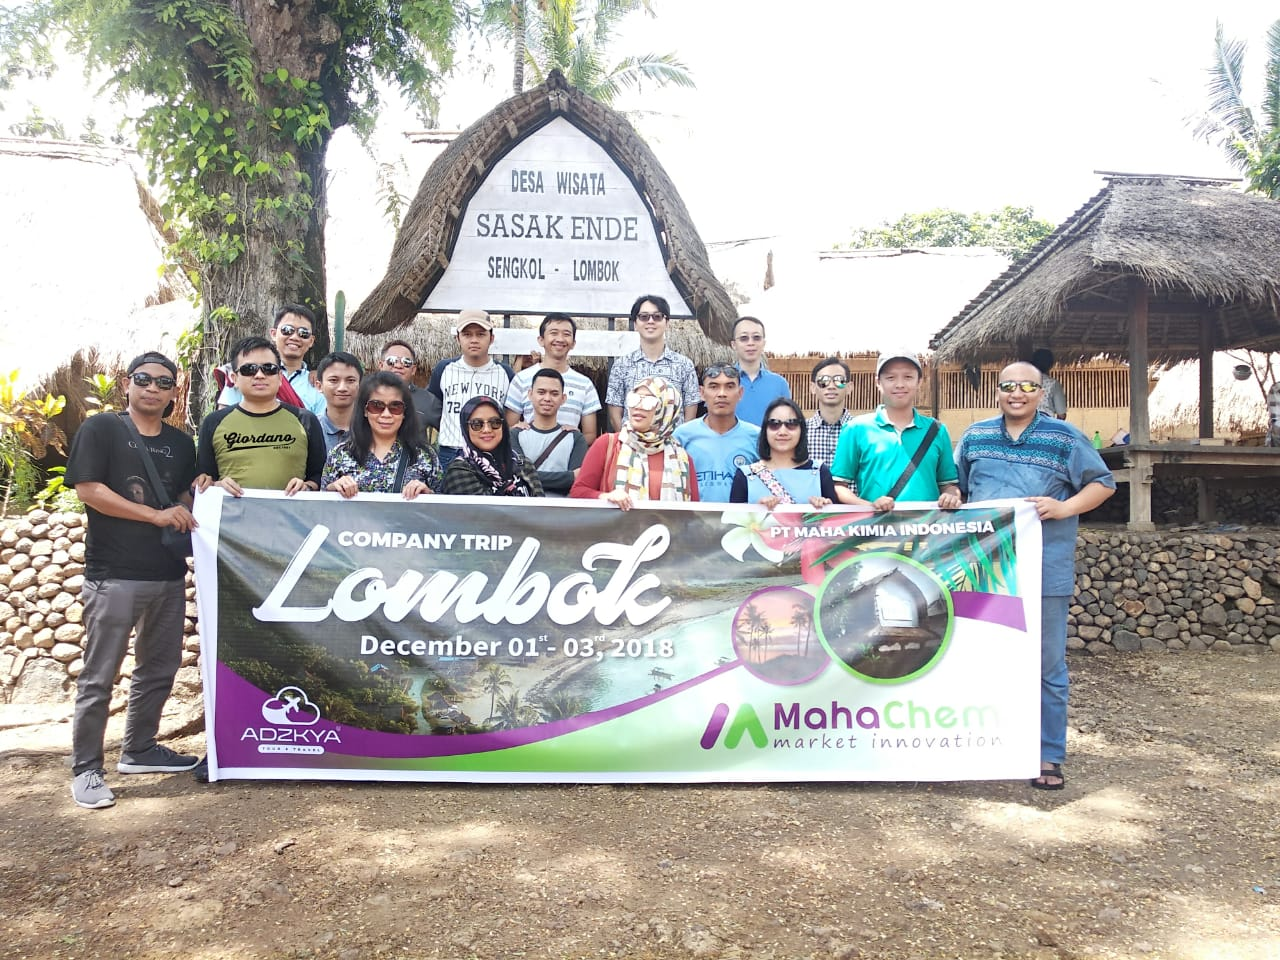 LOMBOK TOUR 01-03 DES 2018 WITH PT MAHAKIMIA CHEMICAL INDONESIA